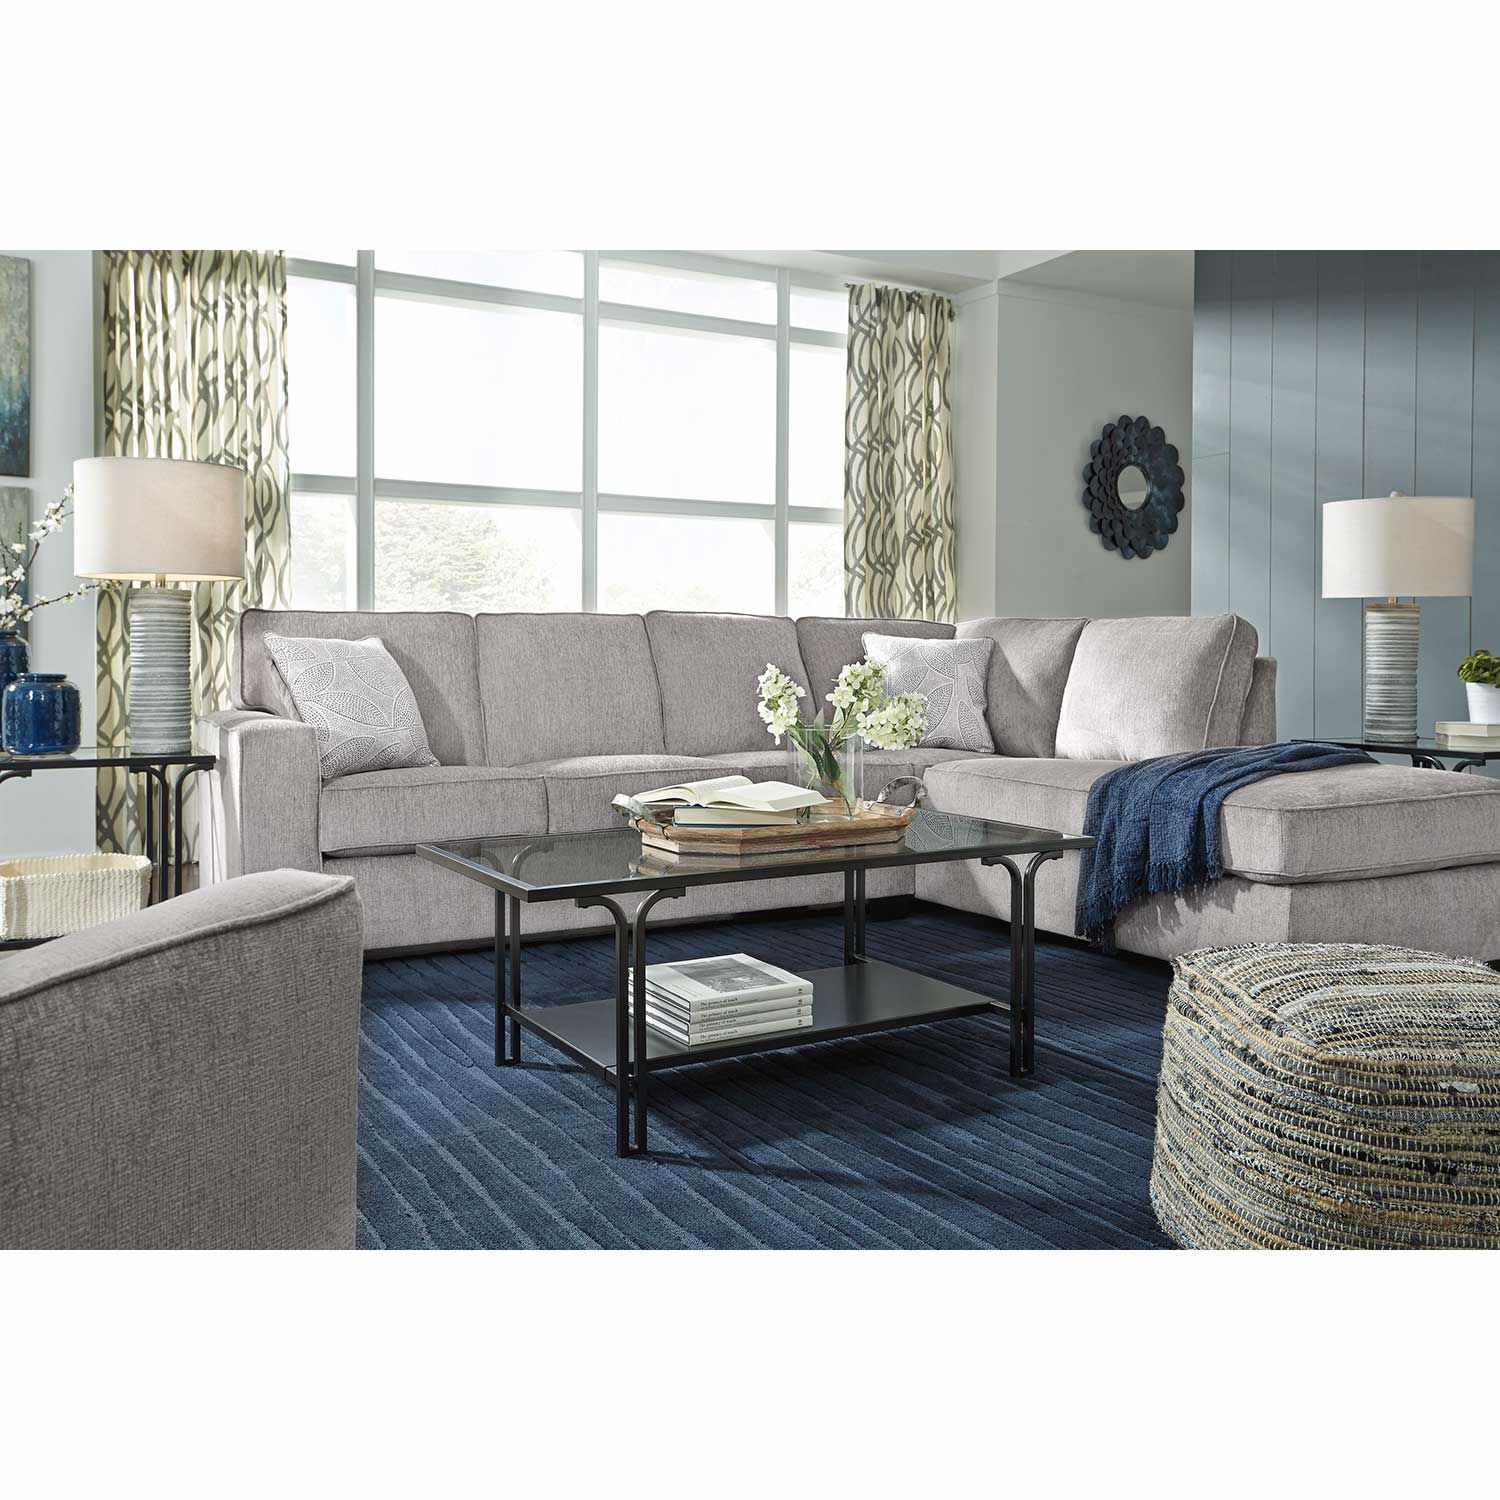 Picture of Altari Alloy 2 PC Sleeper Sectional with LAF Chaise